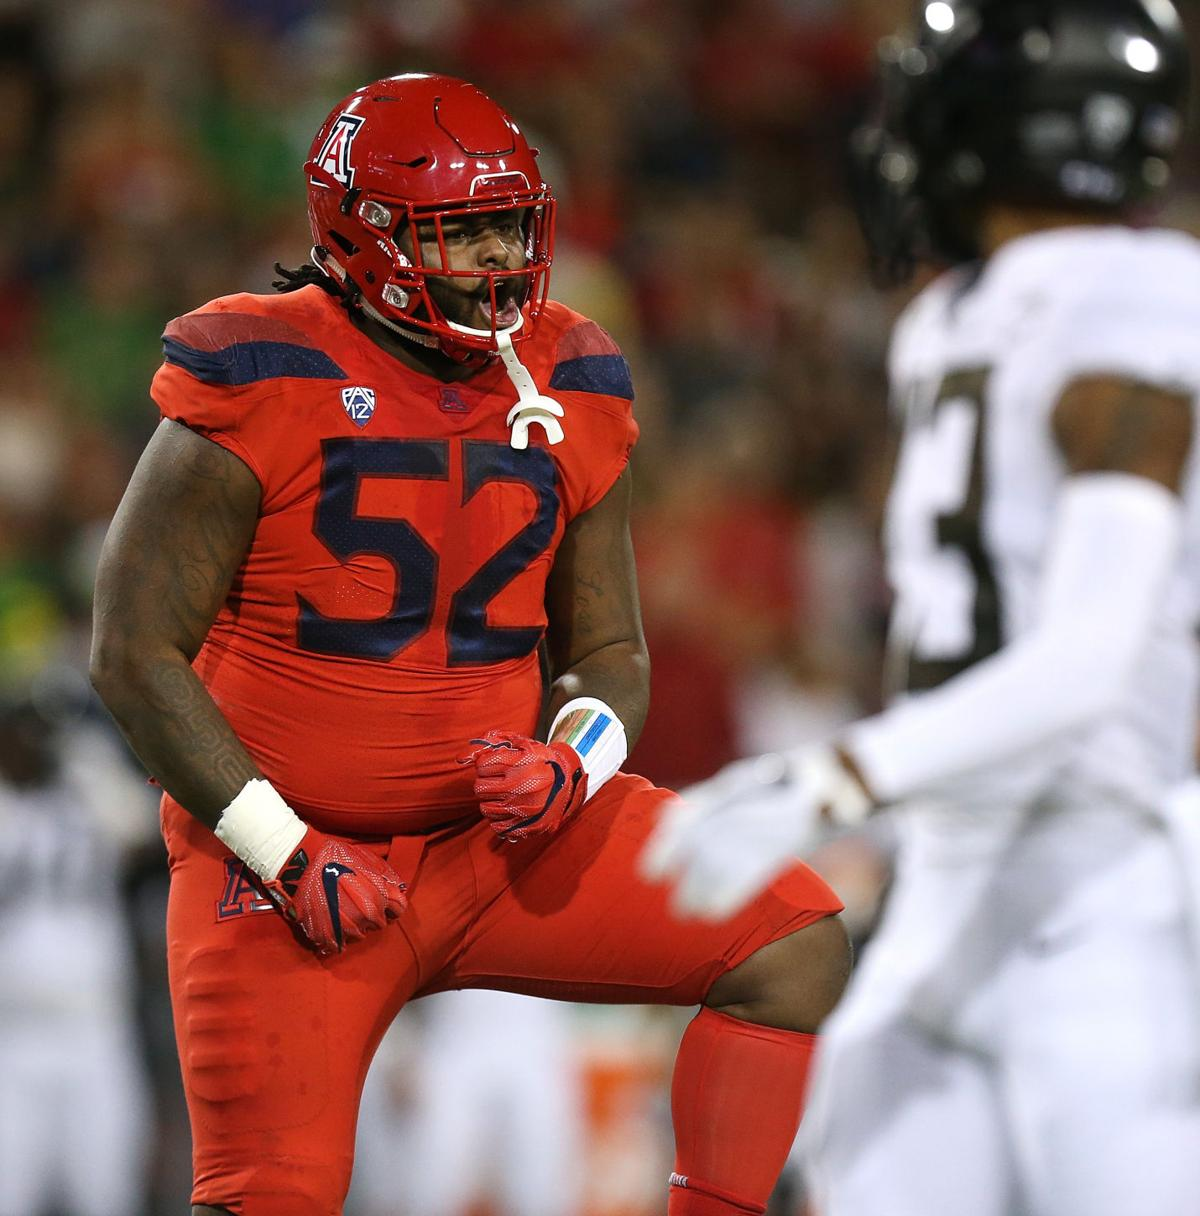 Arizona Wildcats vs. No. 19 Oregon Ducks (copy)